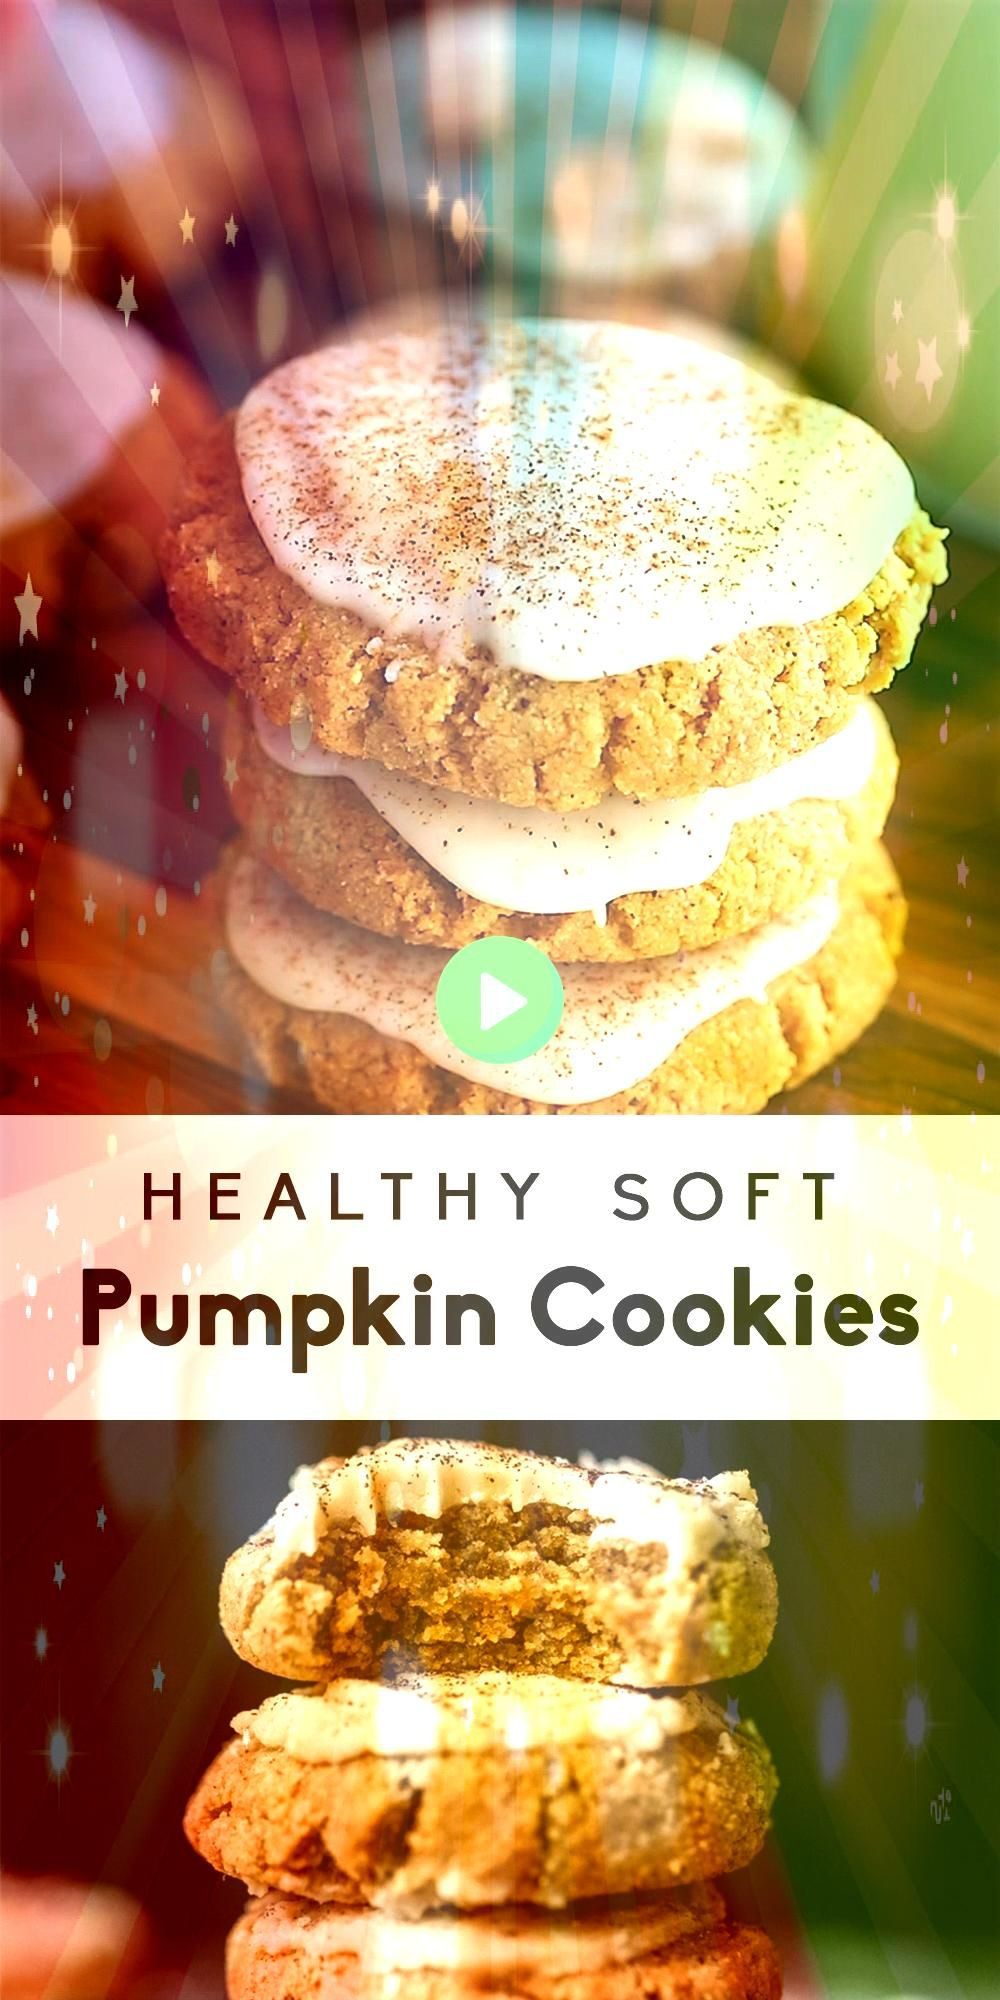 Soft Pumpkin Cookies with Salted Maple Frosting These healthy soft pumpkin cookies with an addicting salted maple frosting are absolutely delicious These meltinyourmouth...